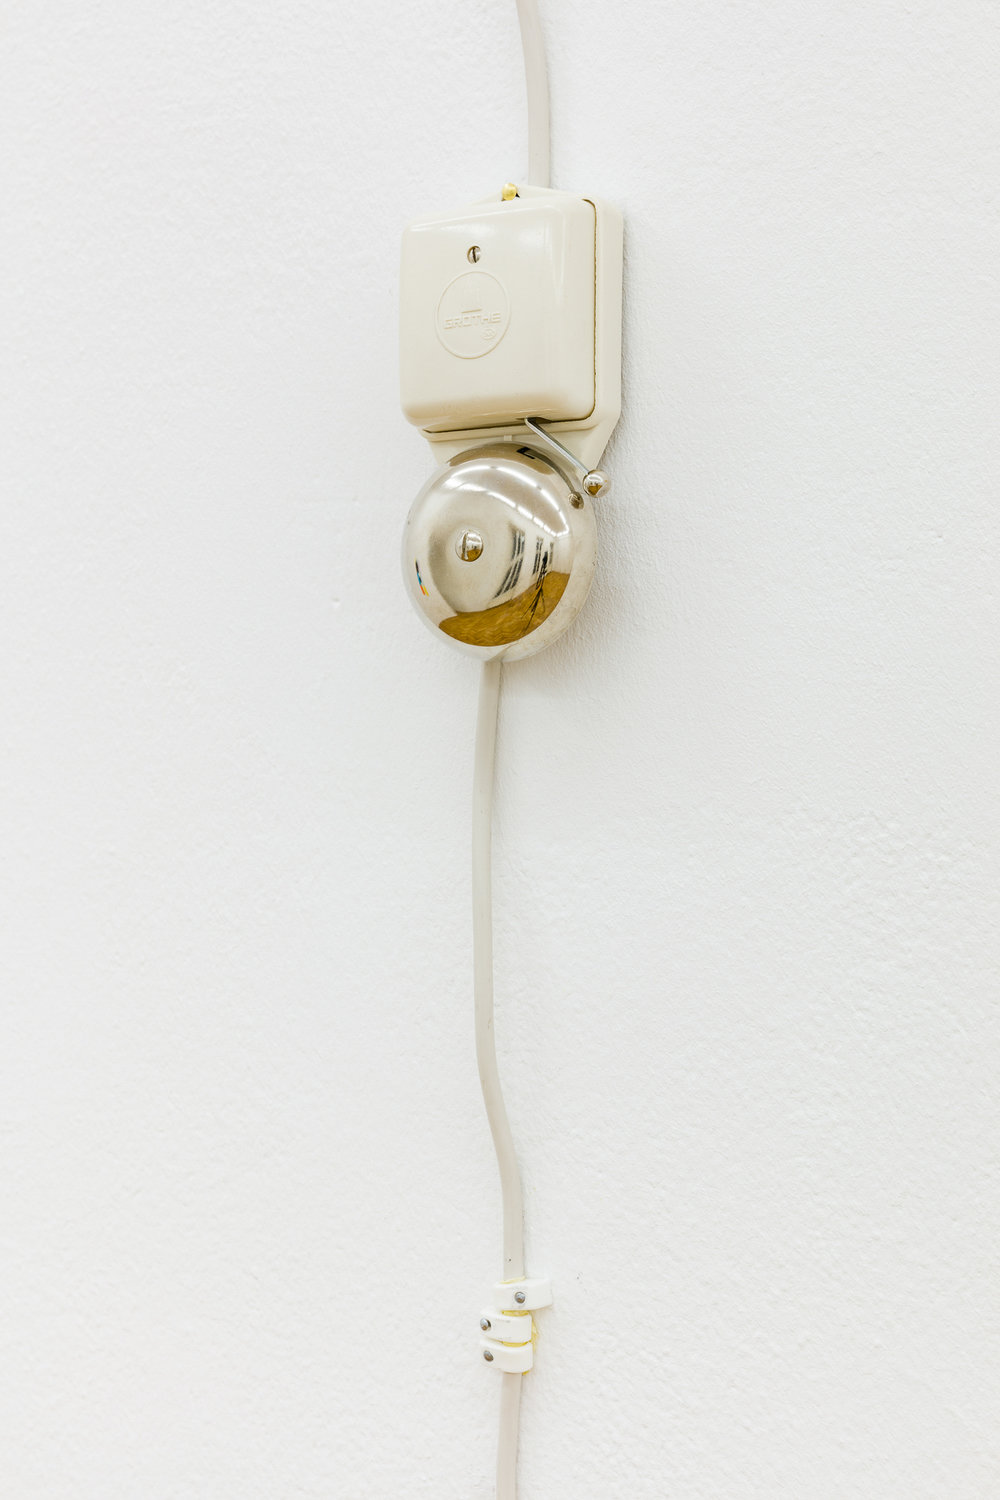 2018_11_08_Vera Lutz at Felix Gaudlitz_by kunst-dokumentation.com_027_web.jpg